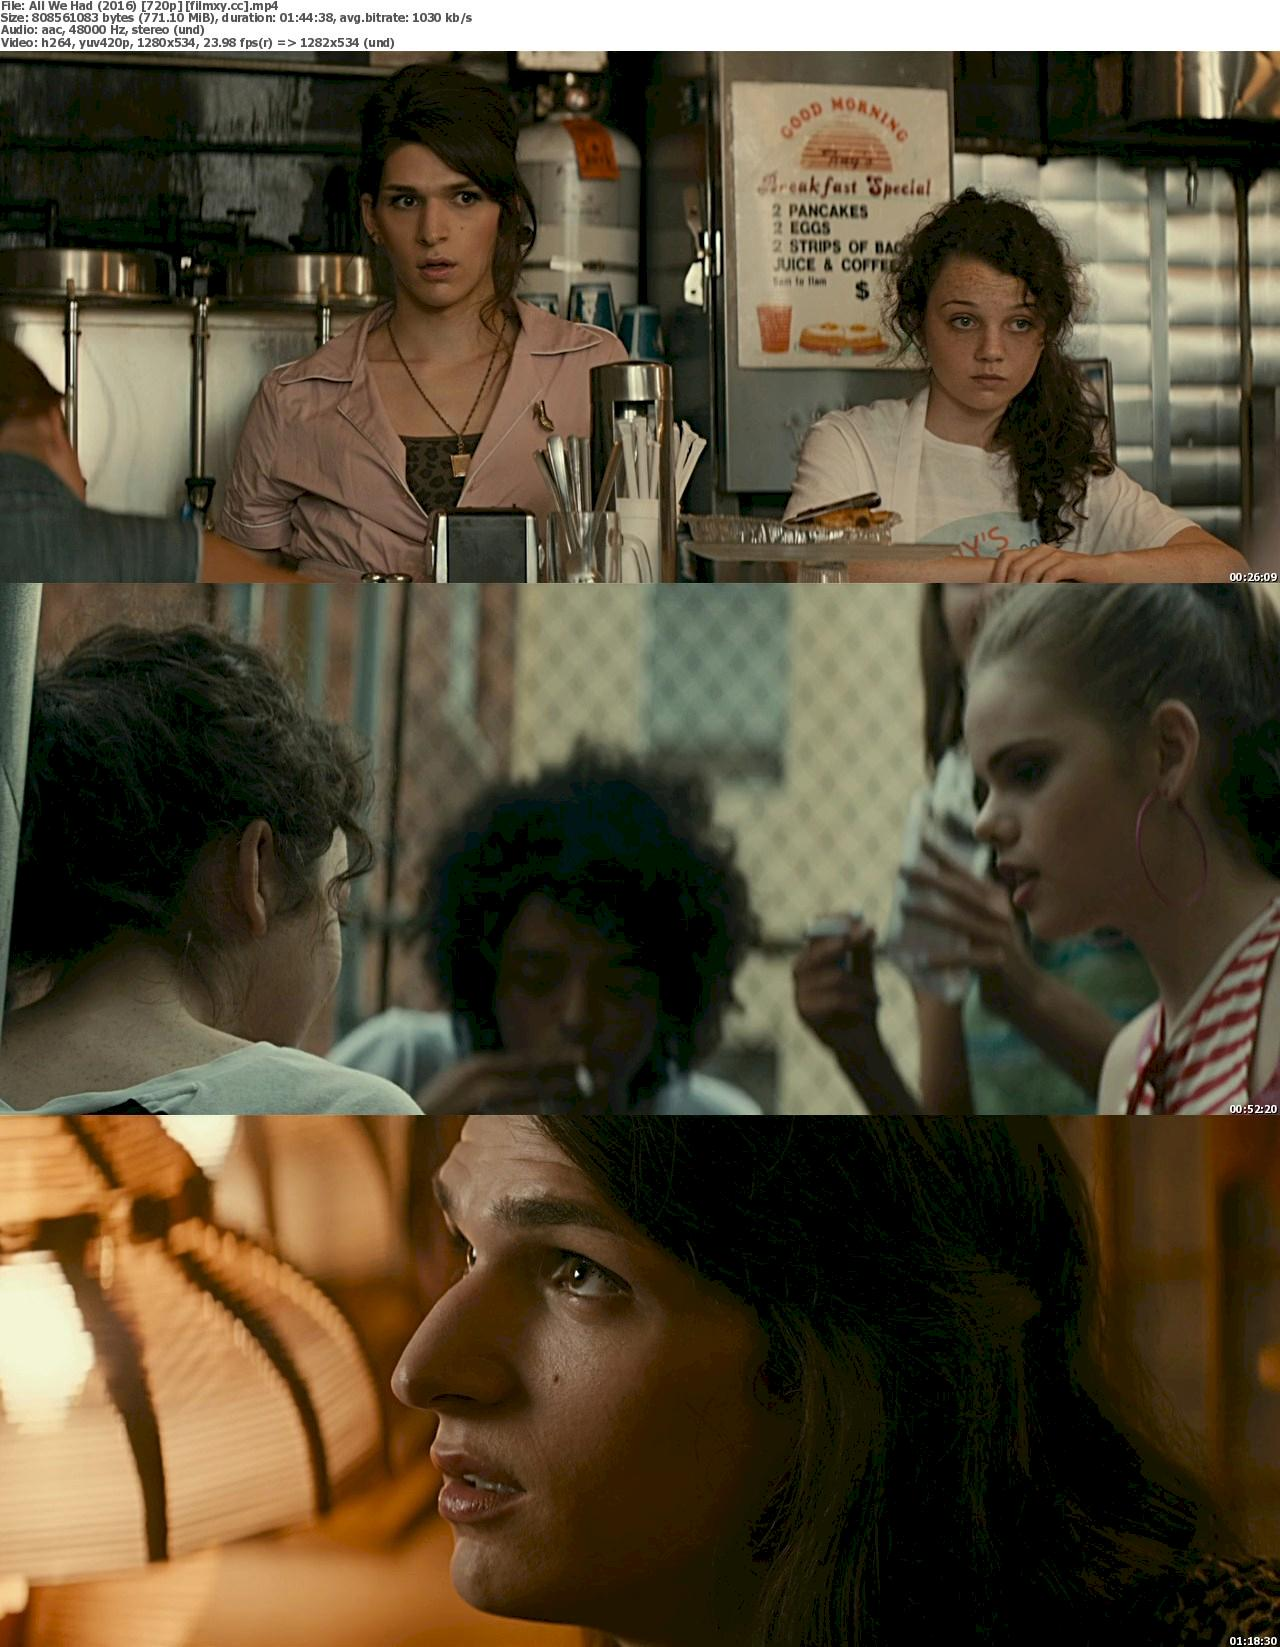 All We Had (2016) 720p & 1080p Bluray Free Download 720p Screenshot